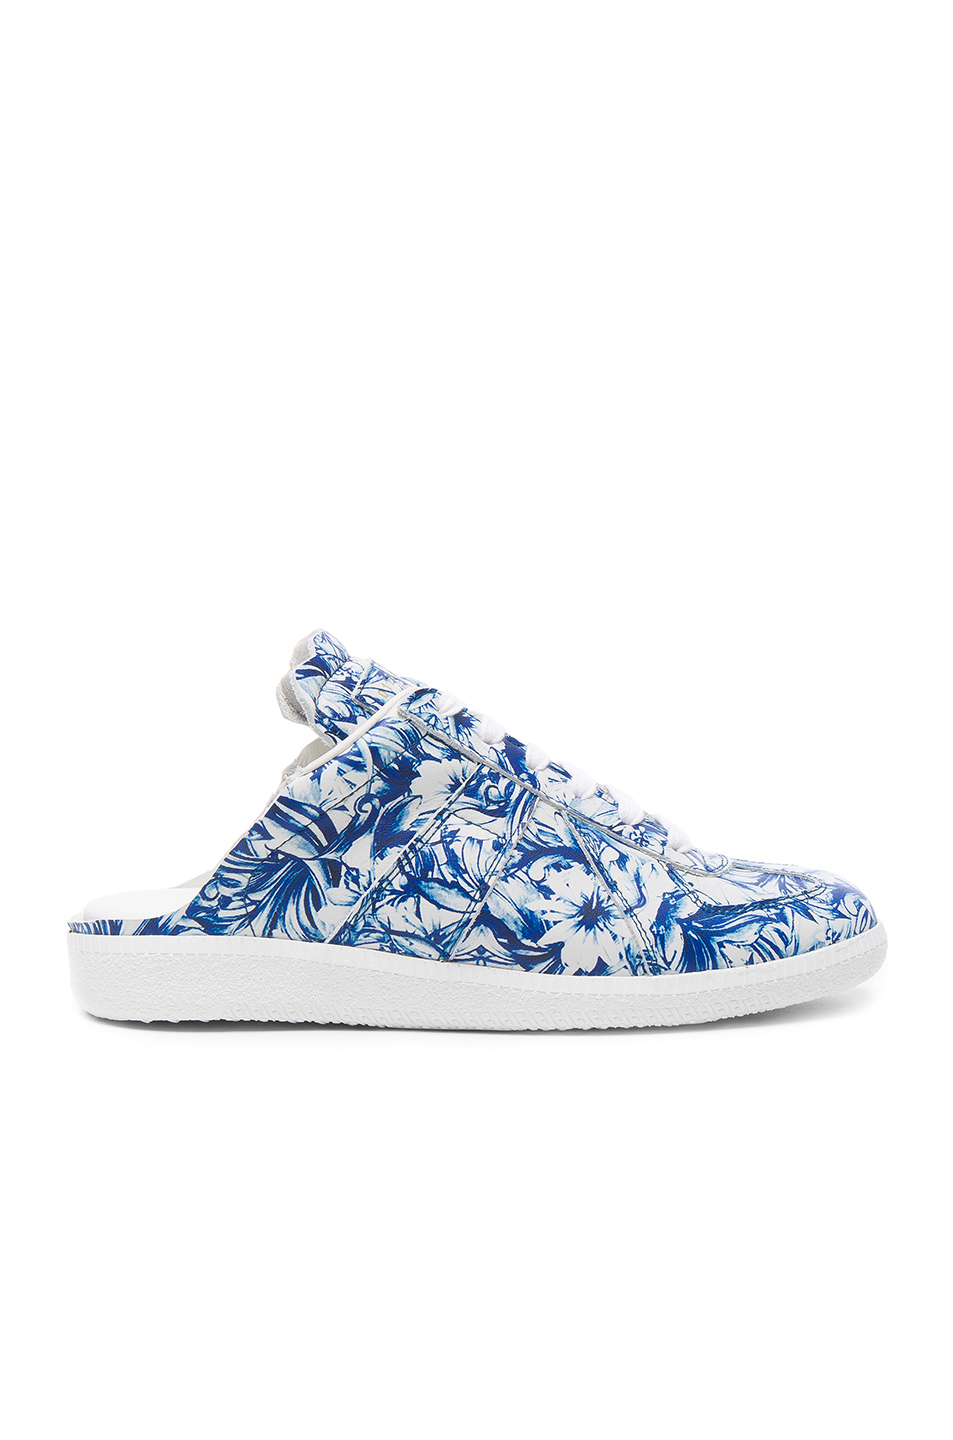 Maison Margiela Printed Leather Sneakers in Blue,White